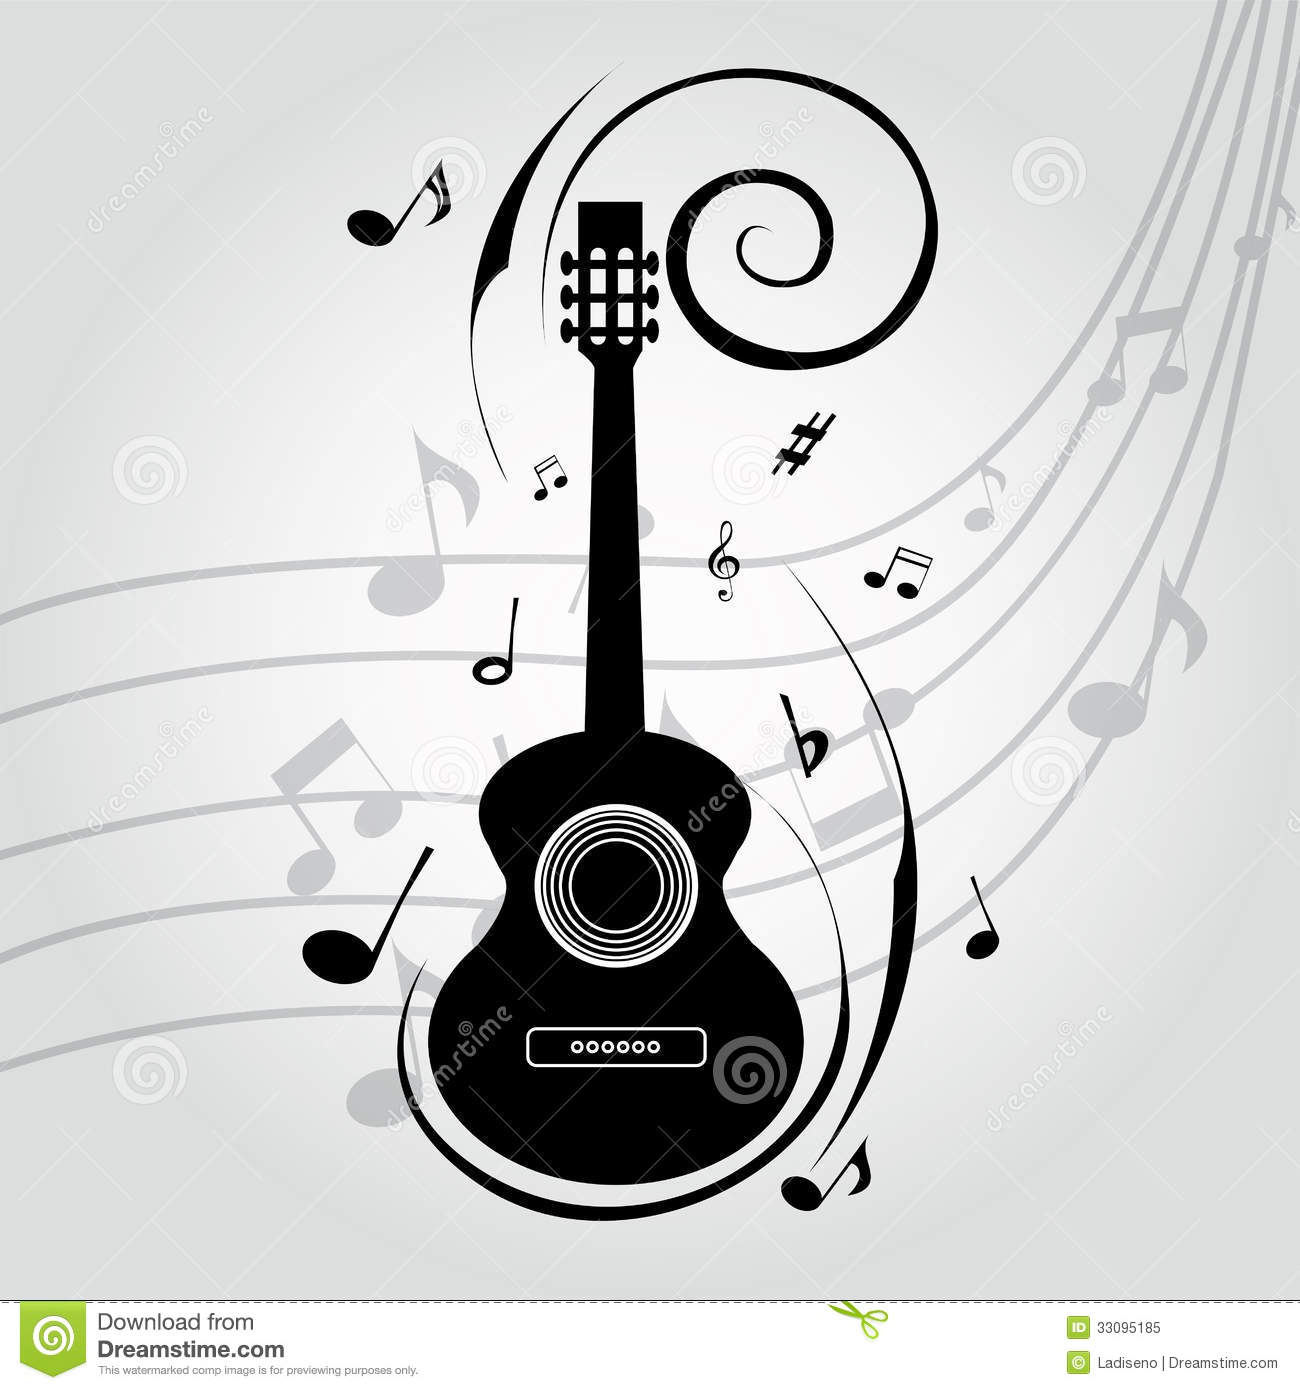 Abstract guitar silhouette on special music background.